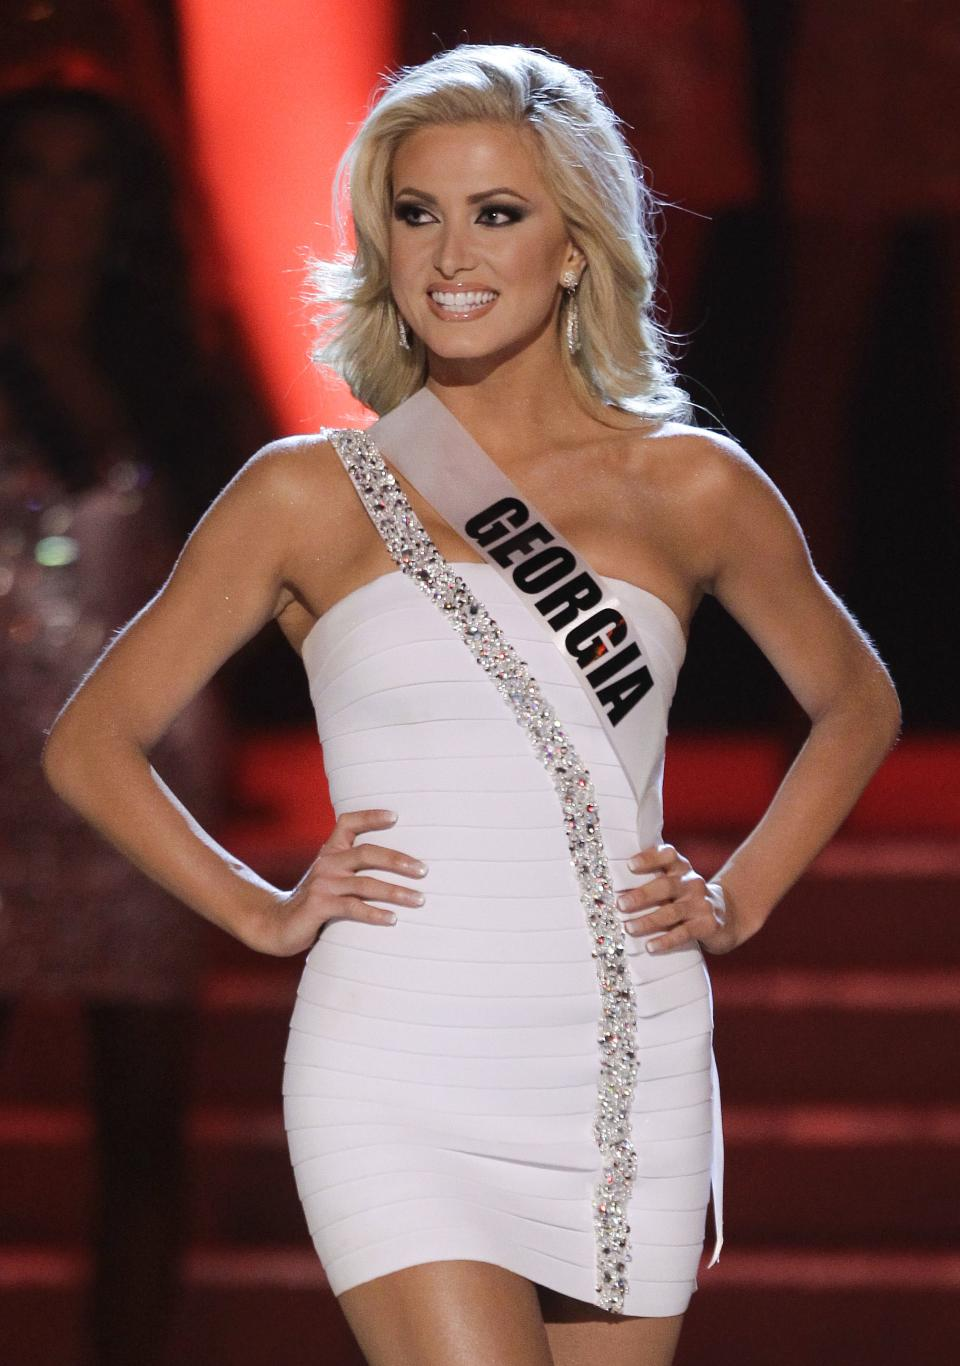 Kaylin Reque, Miss Georgia, is introduced as one of the 16 quarterfinalists during the Miss USA pageant, Sunday, June 19, 2011, in Las Vegas.  (AP Photo/Julie Jacobson)